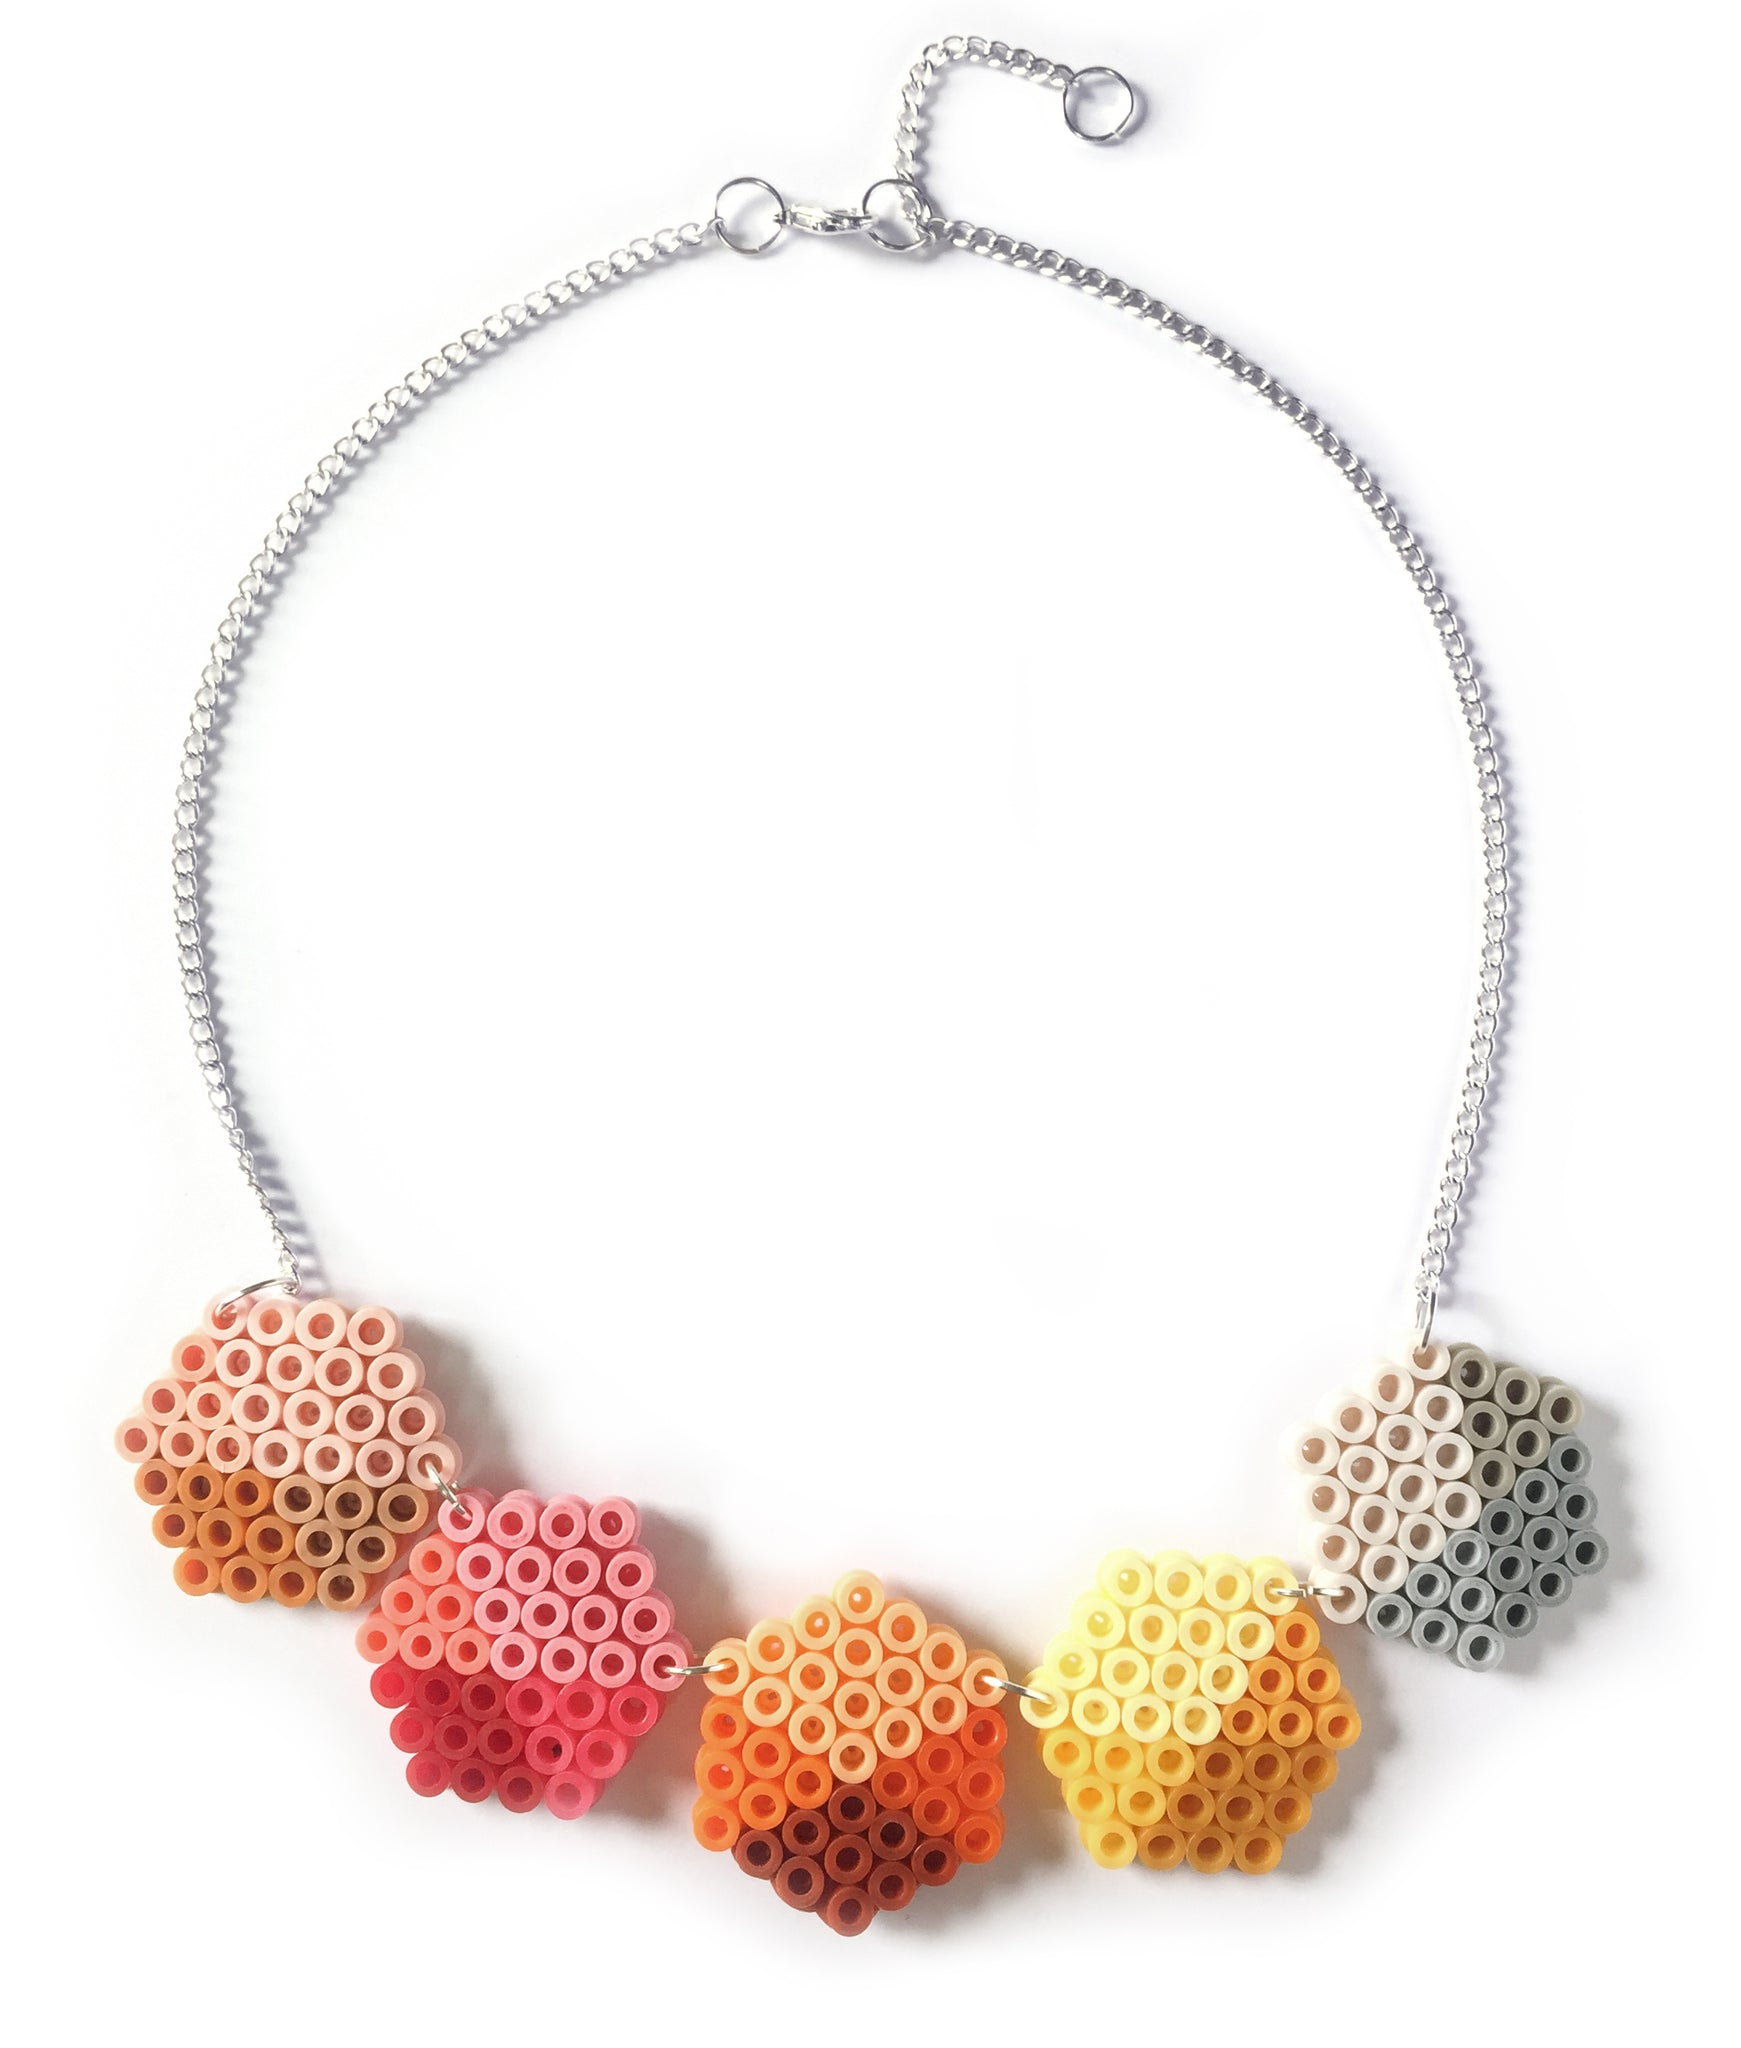 Geometric Beads Necklace - in apricot, lemon and pink.